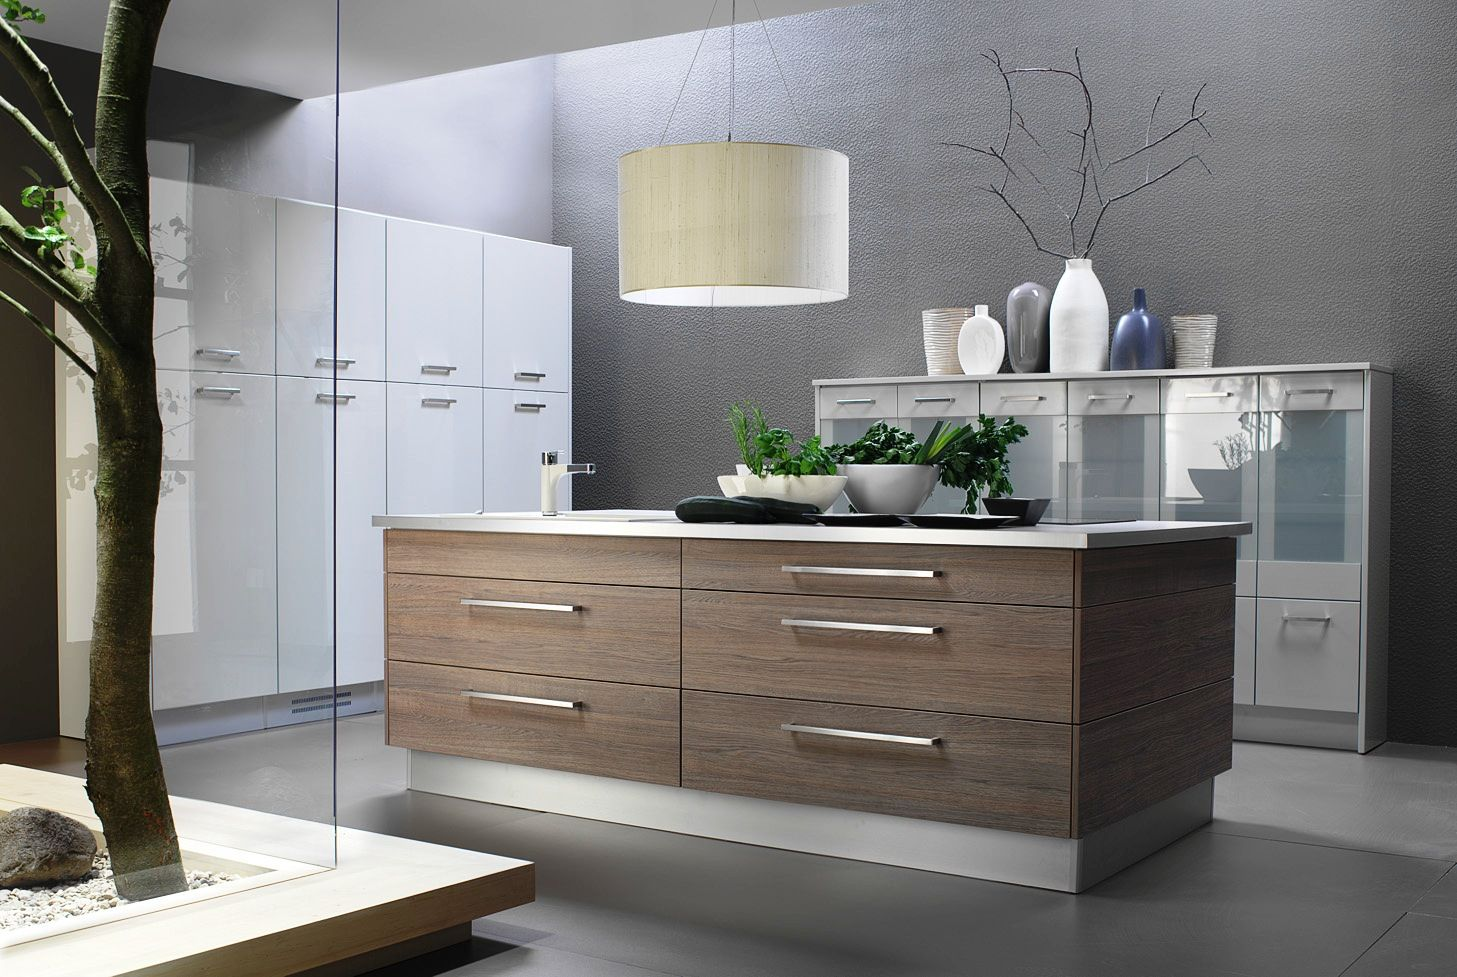 rv kitchen cabinets Image result for laminate for RV cabinets